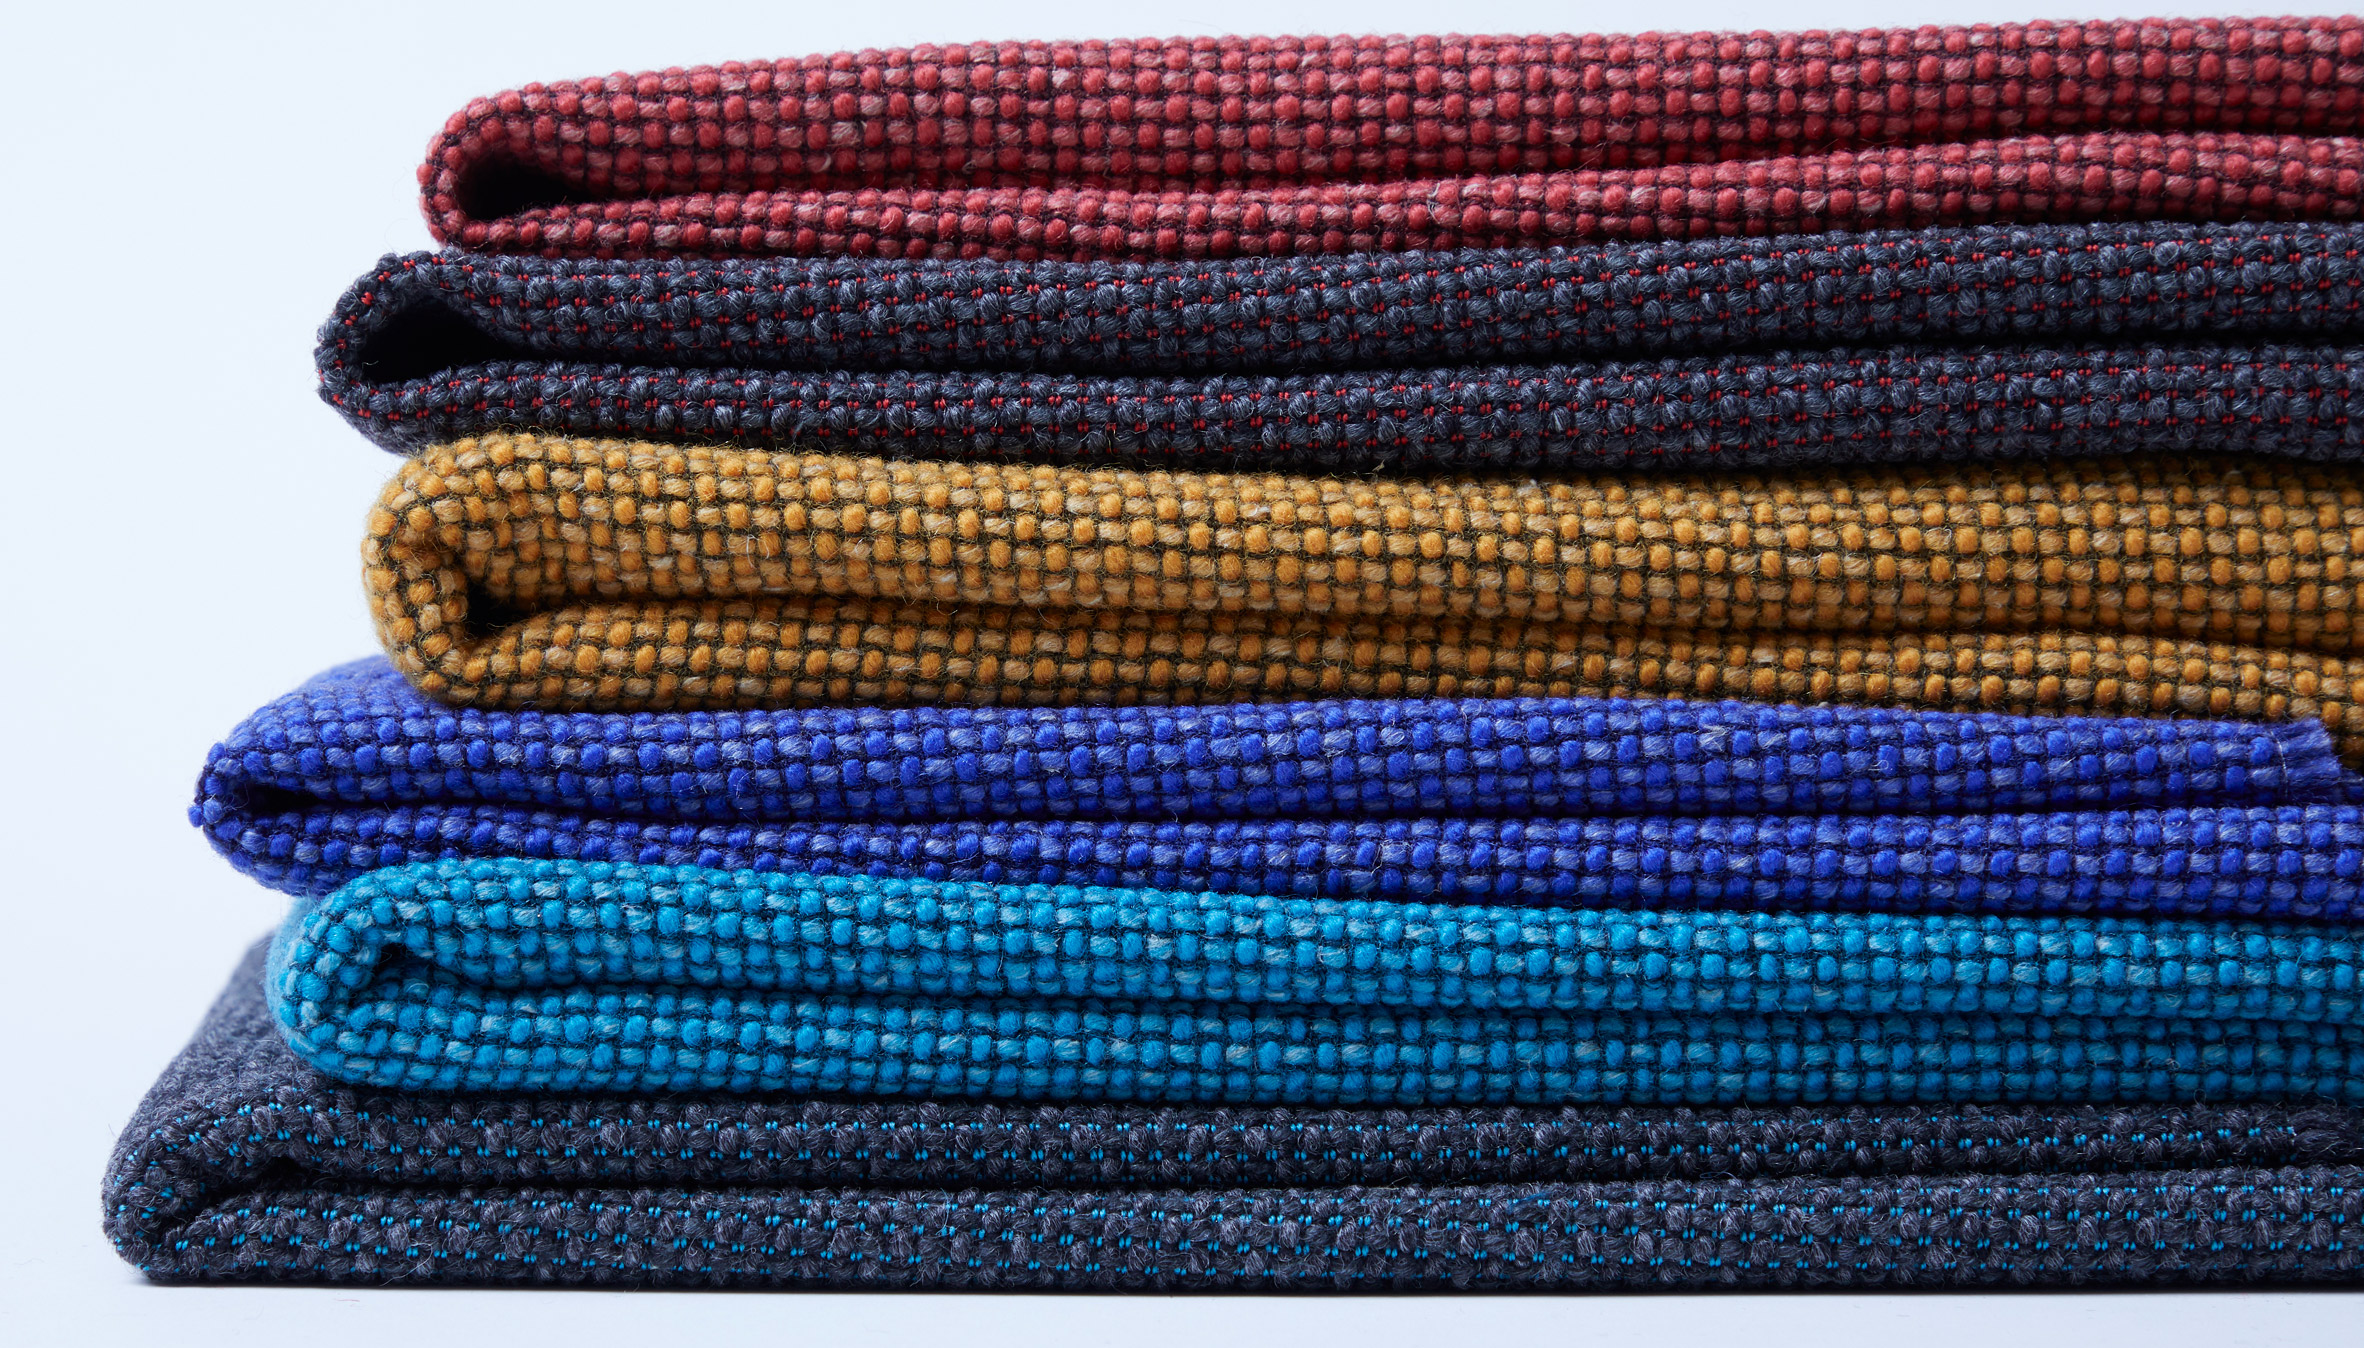 Six styles of the Camira Flax fabric by Camira